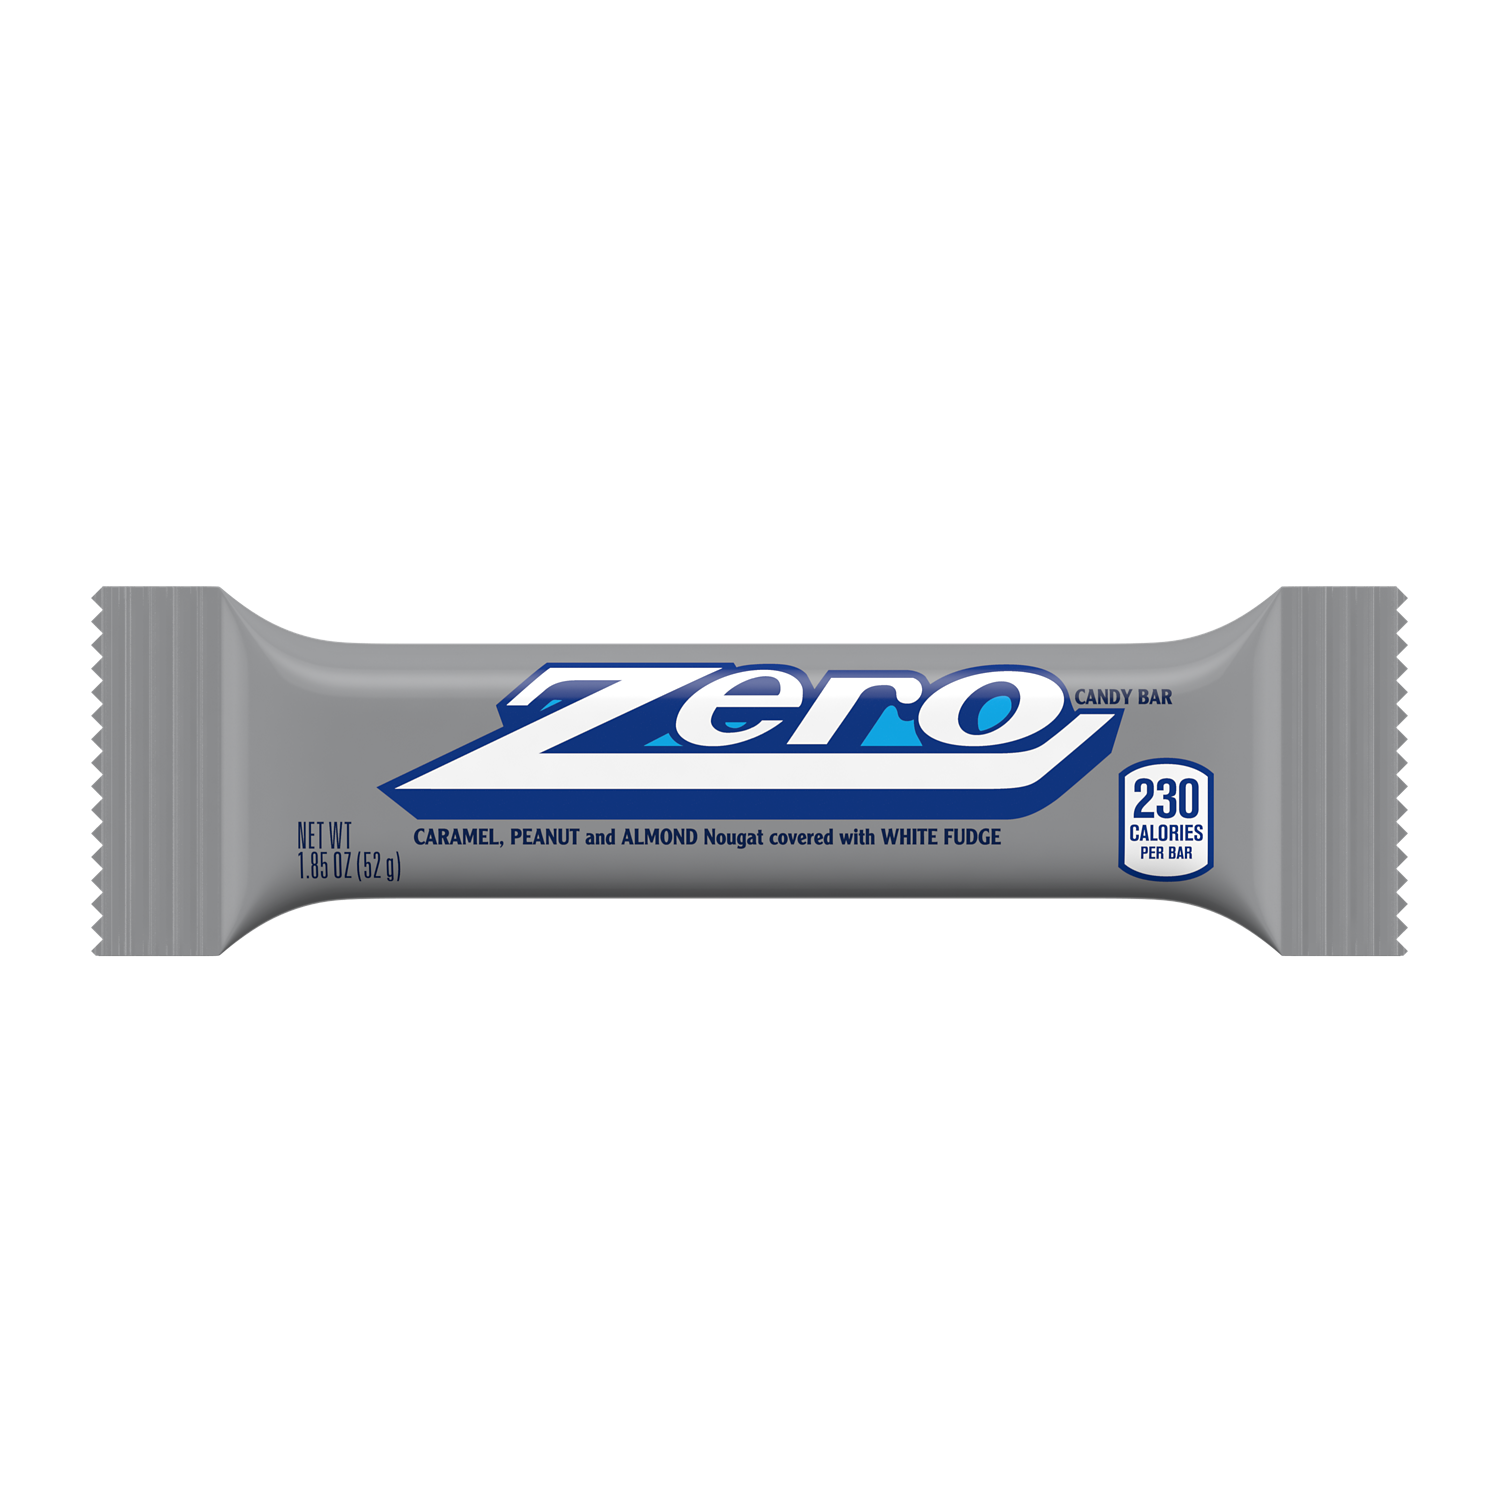 ZERO Candy Bar, 1.85 oz - Front of Package